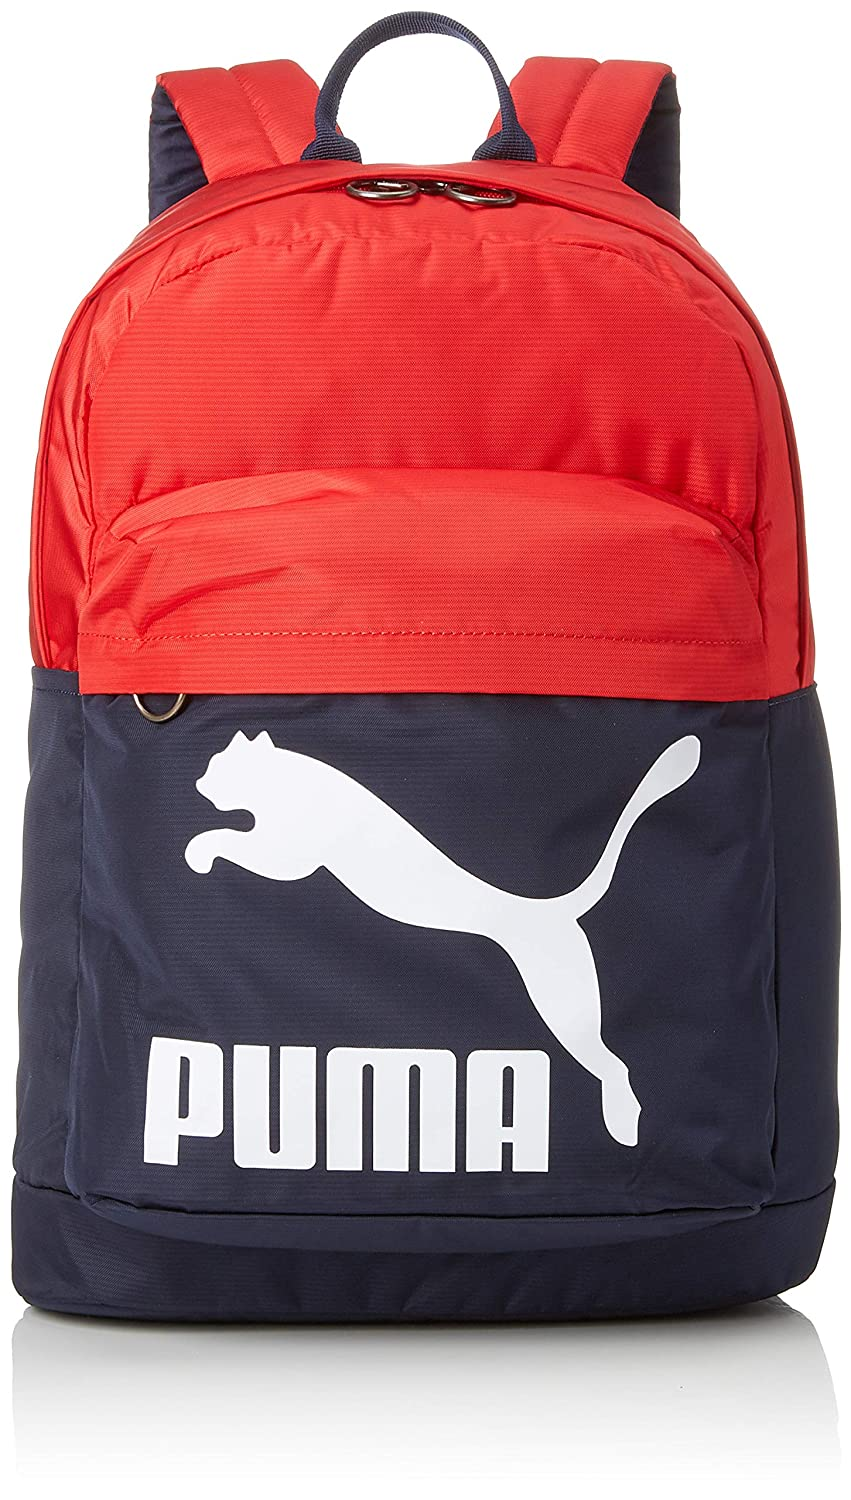 Puma Backpack Peacoat-High Risk Red